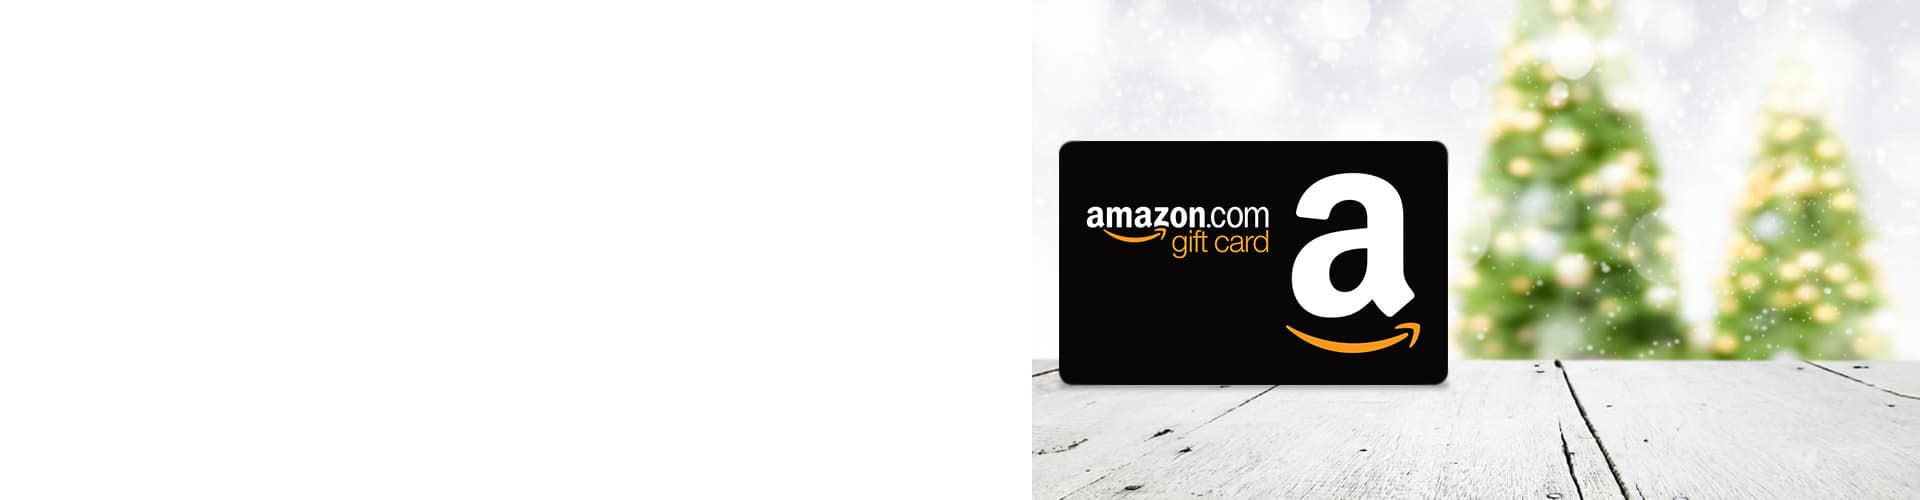 Amazon Rewards Card Offer From Att Bundle Phone And Internet For